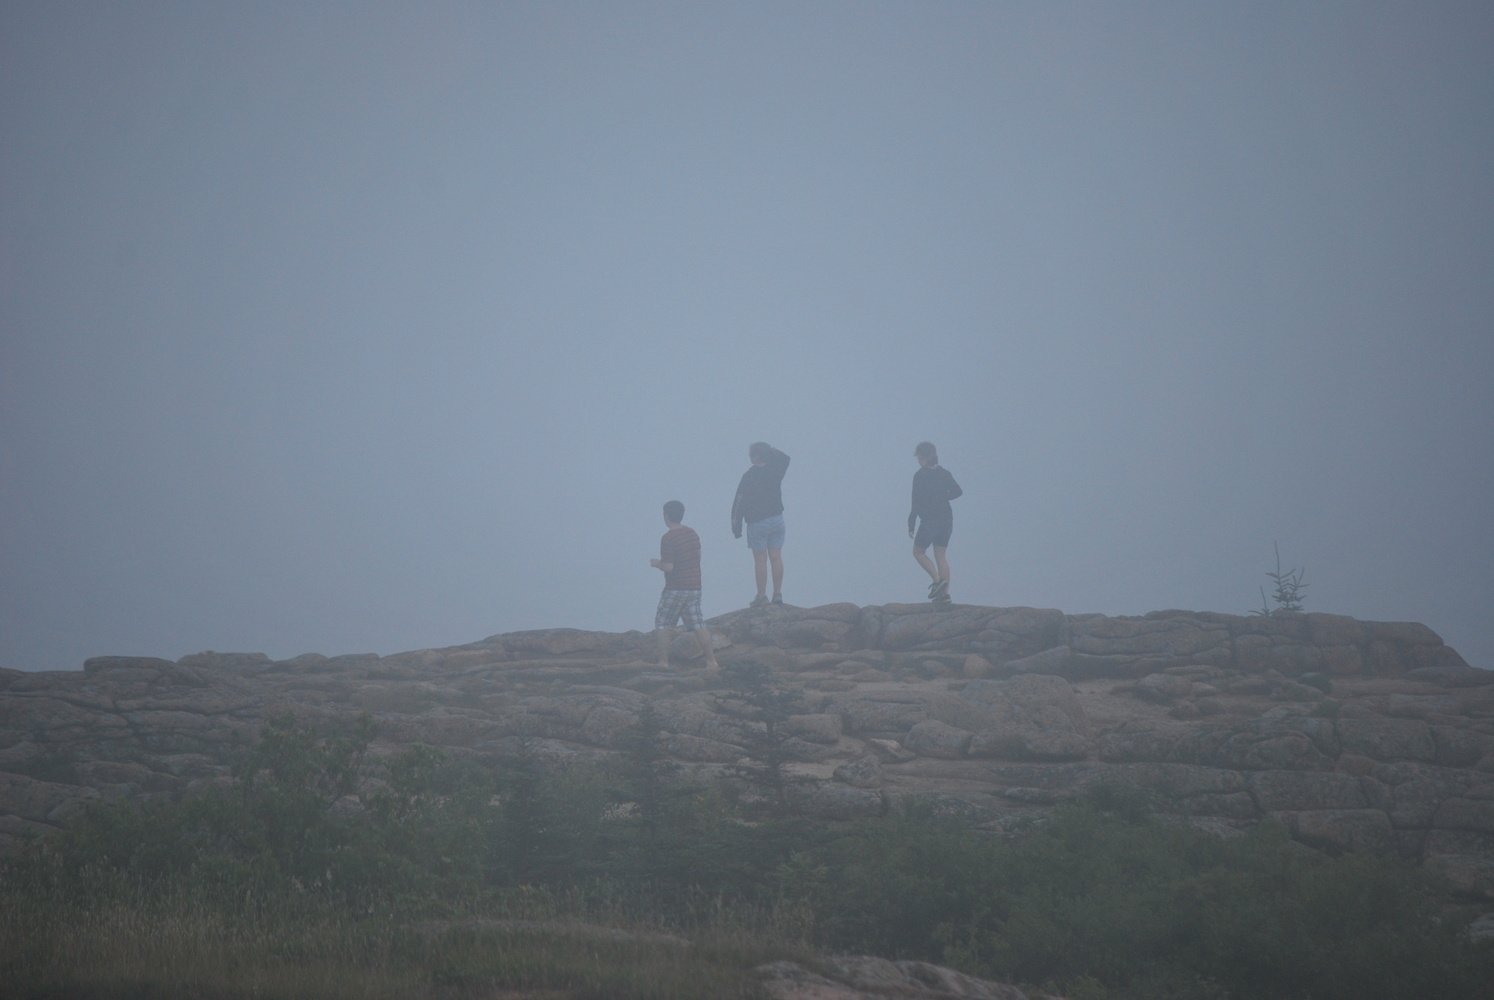 Cadillac Mountain on a foggy morning by Benny Mouton